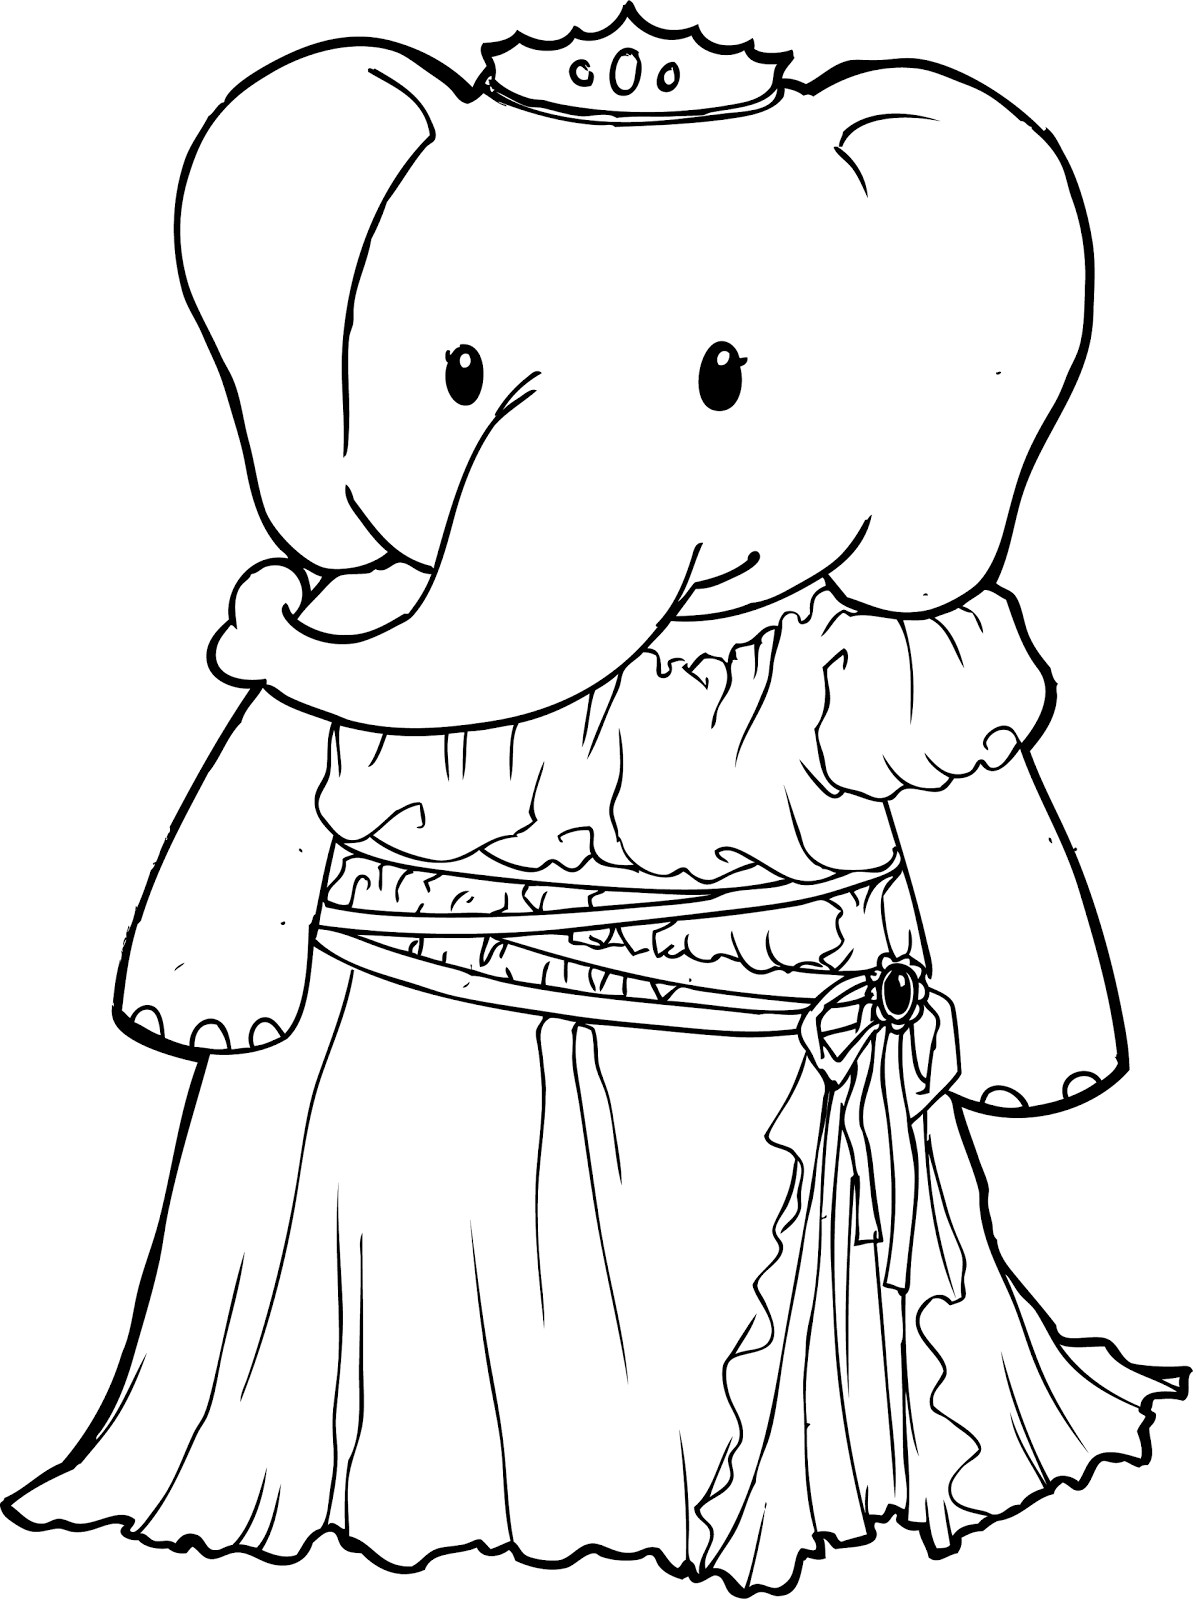 Free Printable Coloring Page Bookmarks Dawn Nicole  - free printable design coloring pages